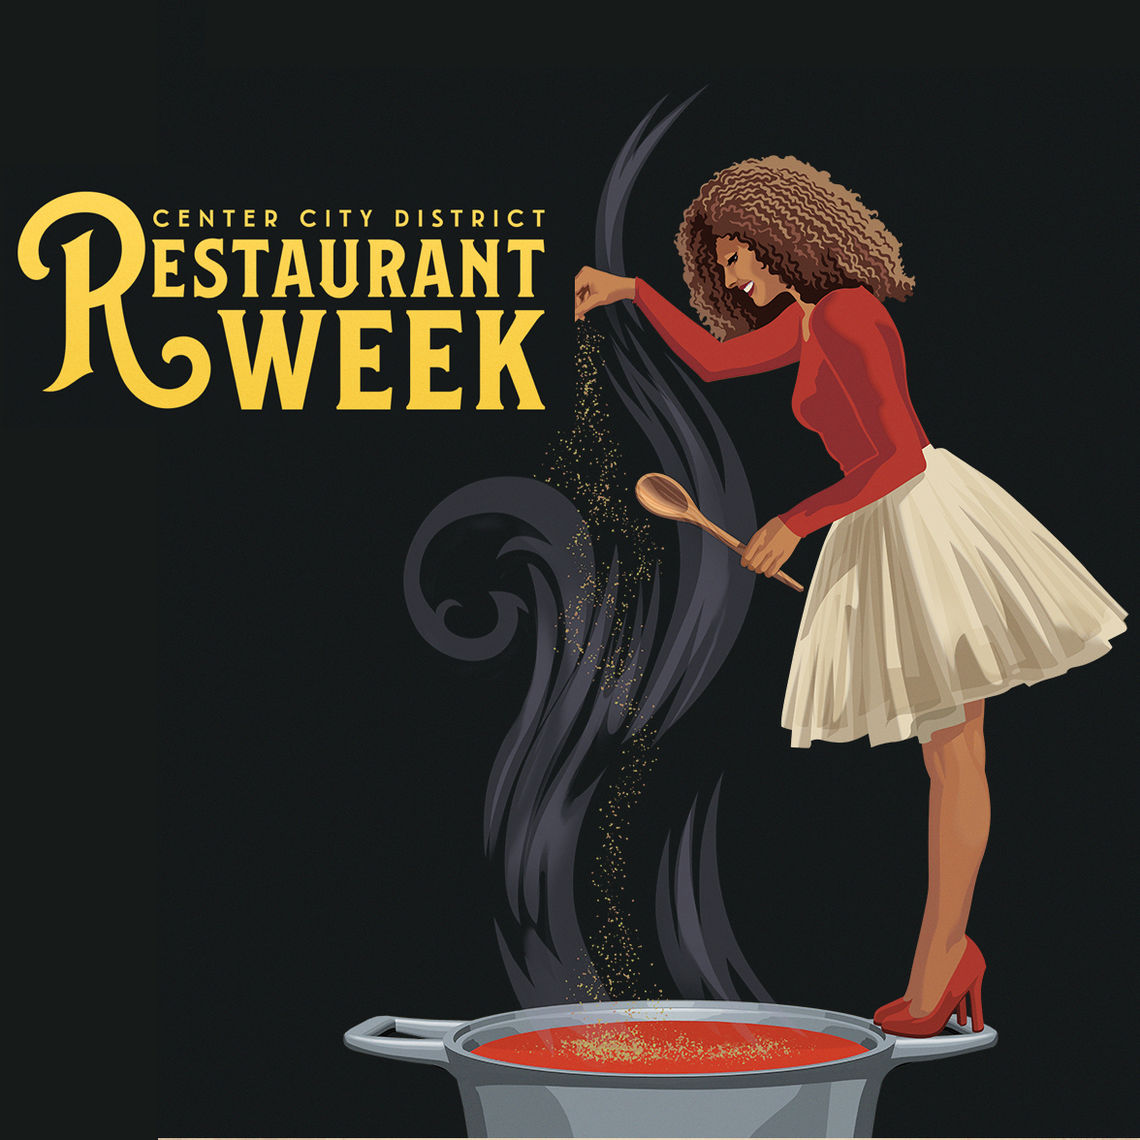 restaurantweek winter2018